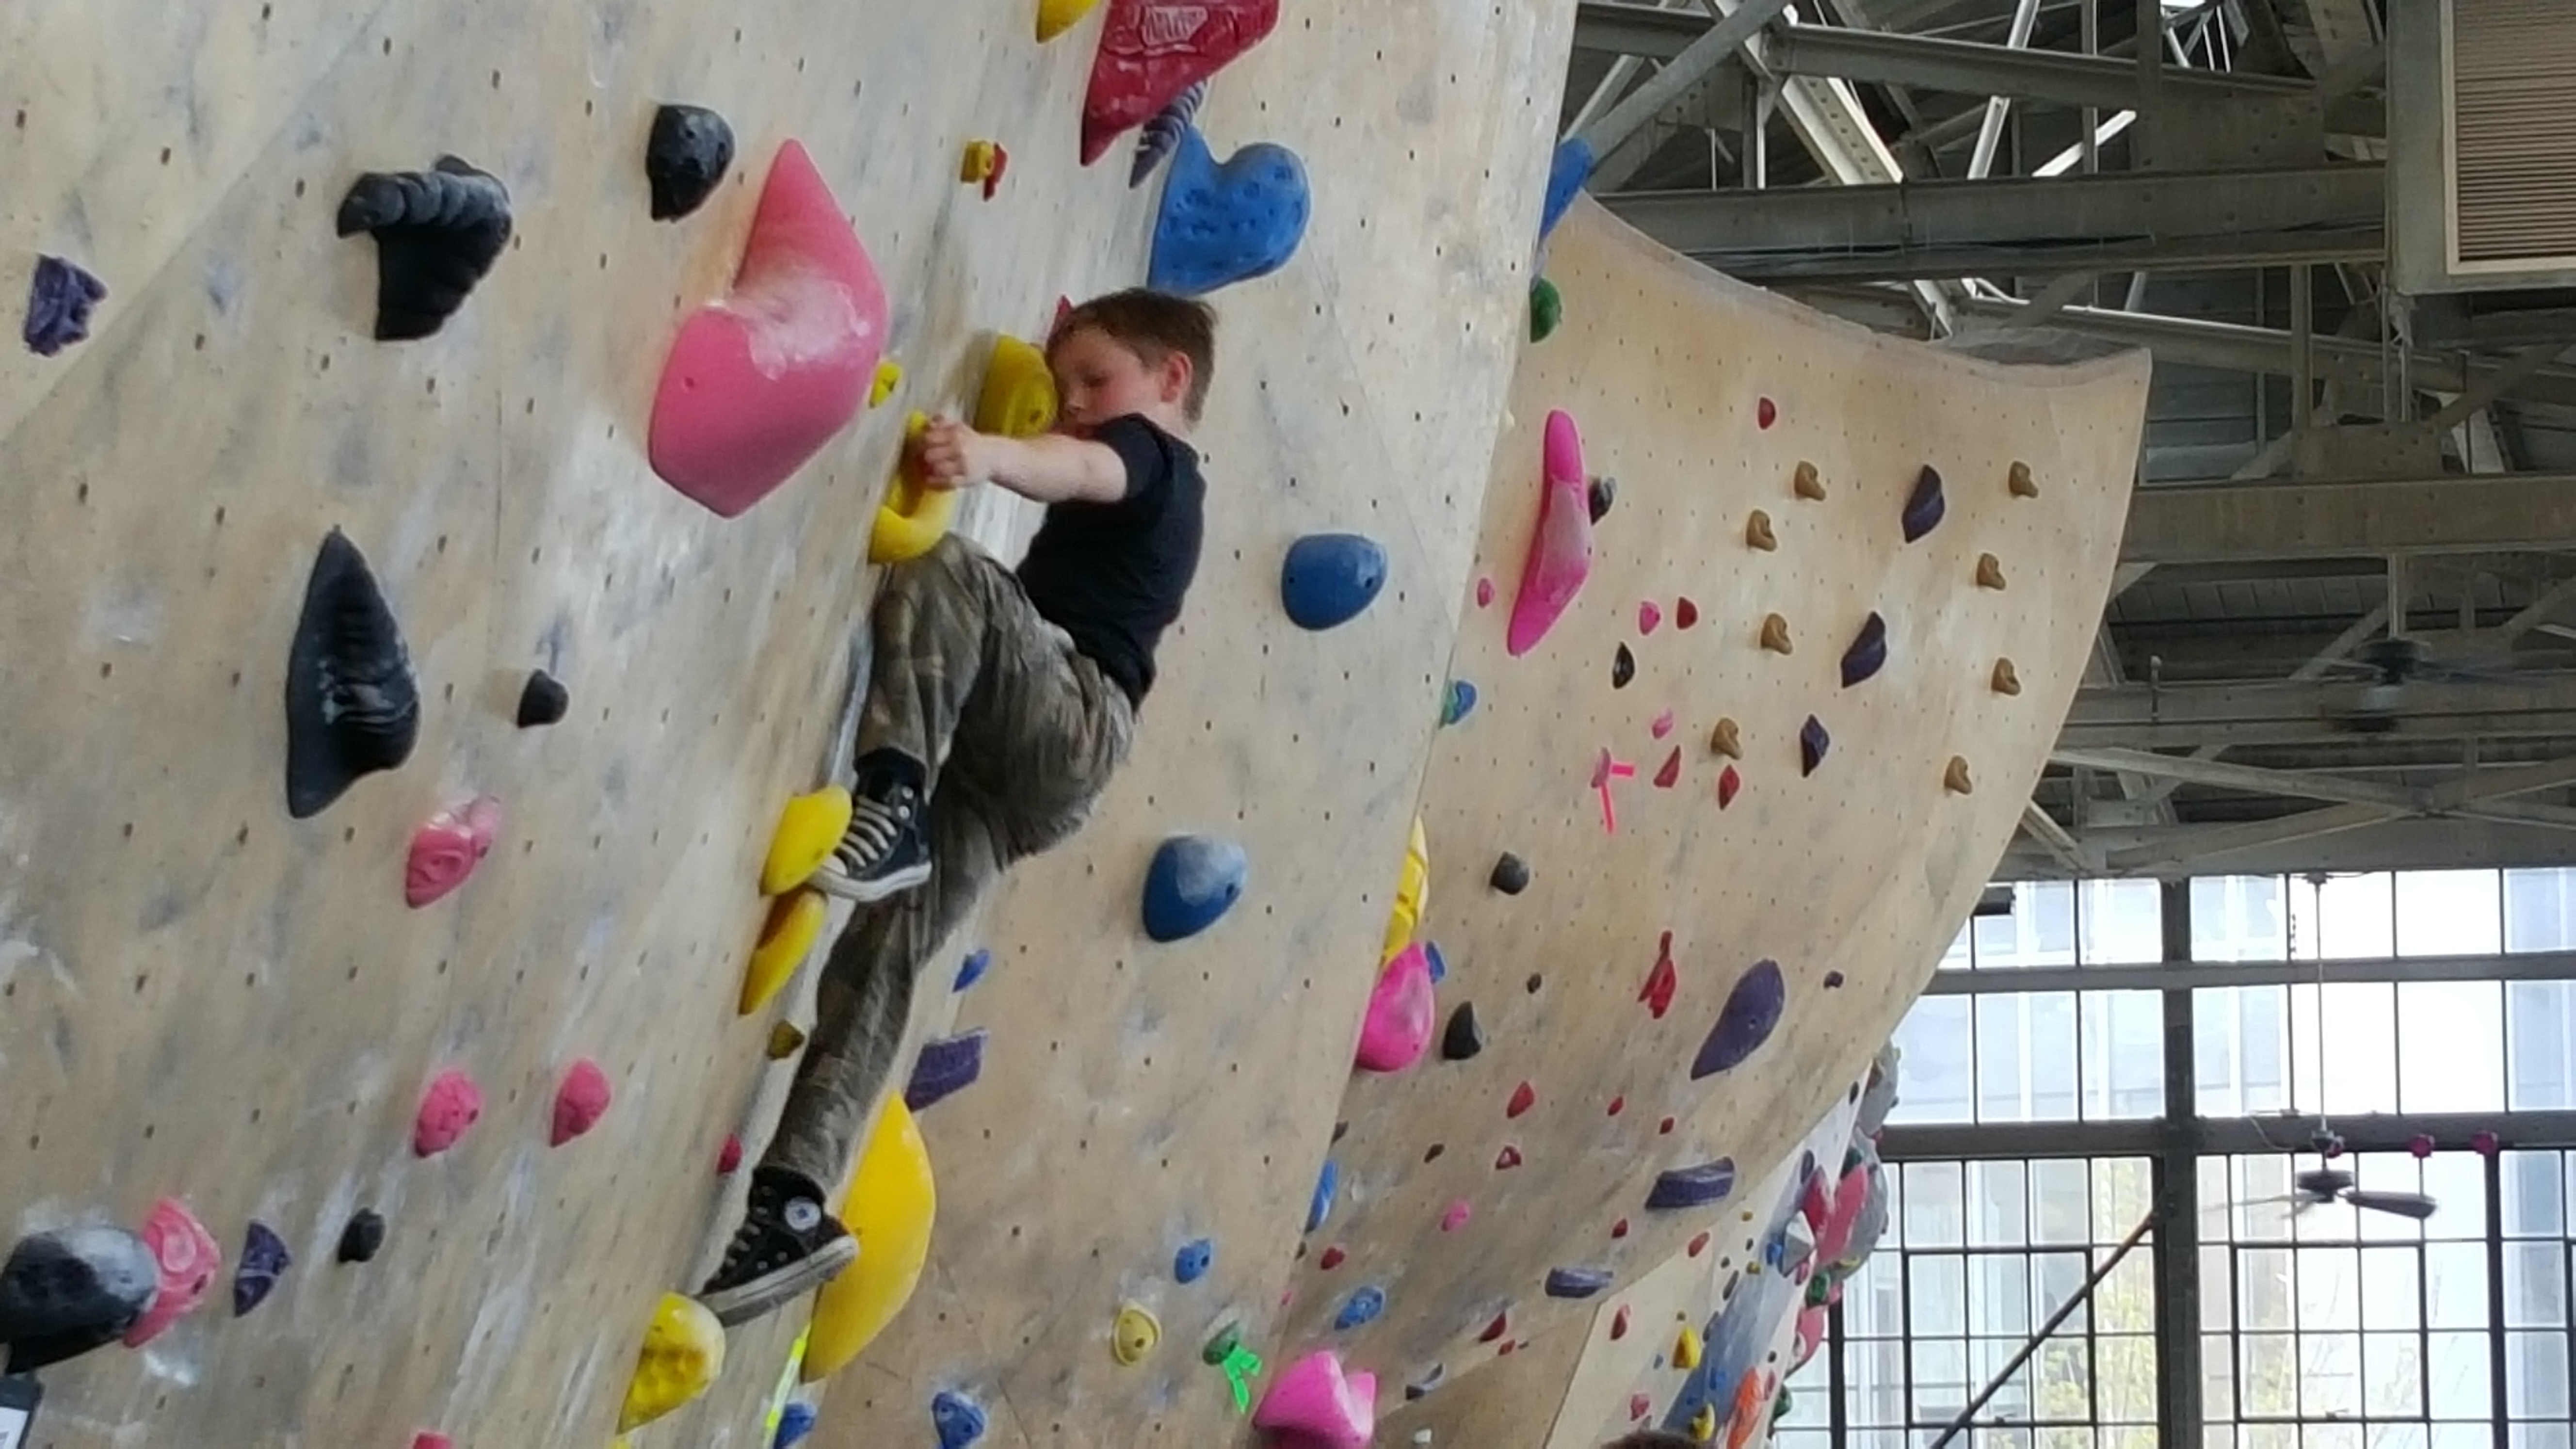 Lincoln Anaya, 7, works the wall at the 2016 Ogden Climbing Festival. Photo: Gephardt Daily